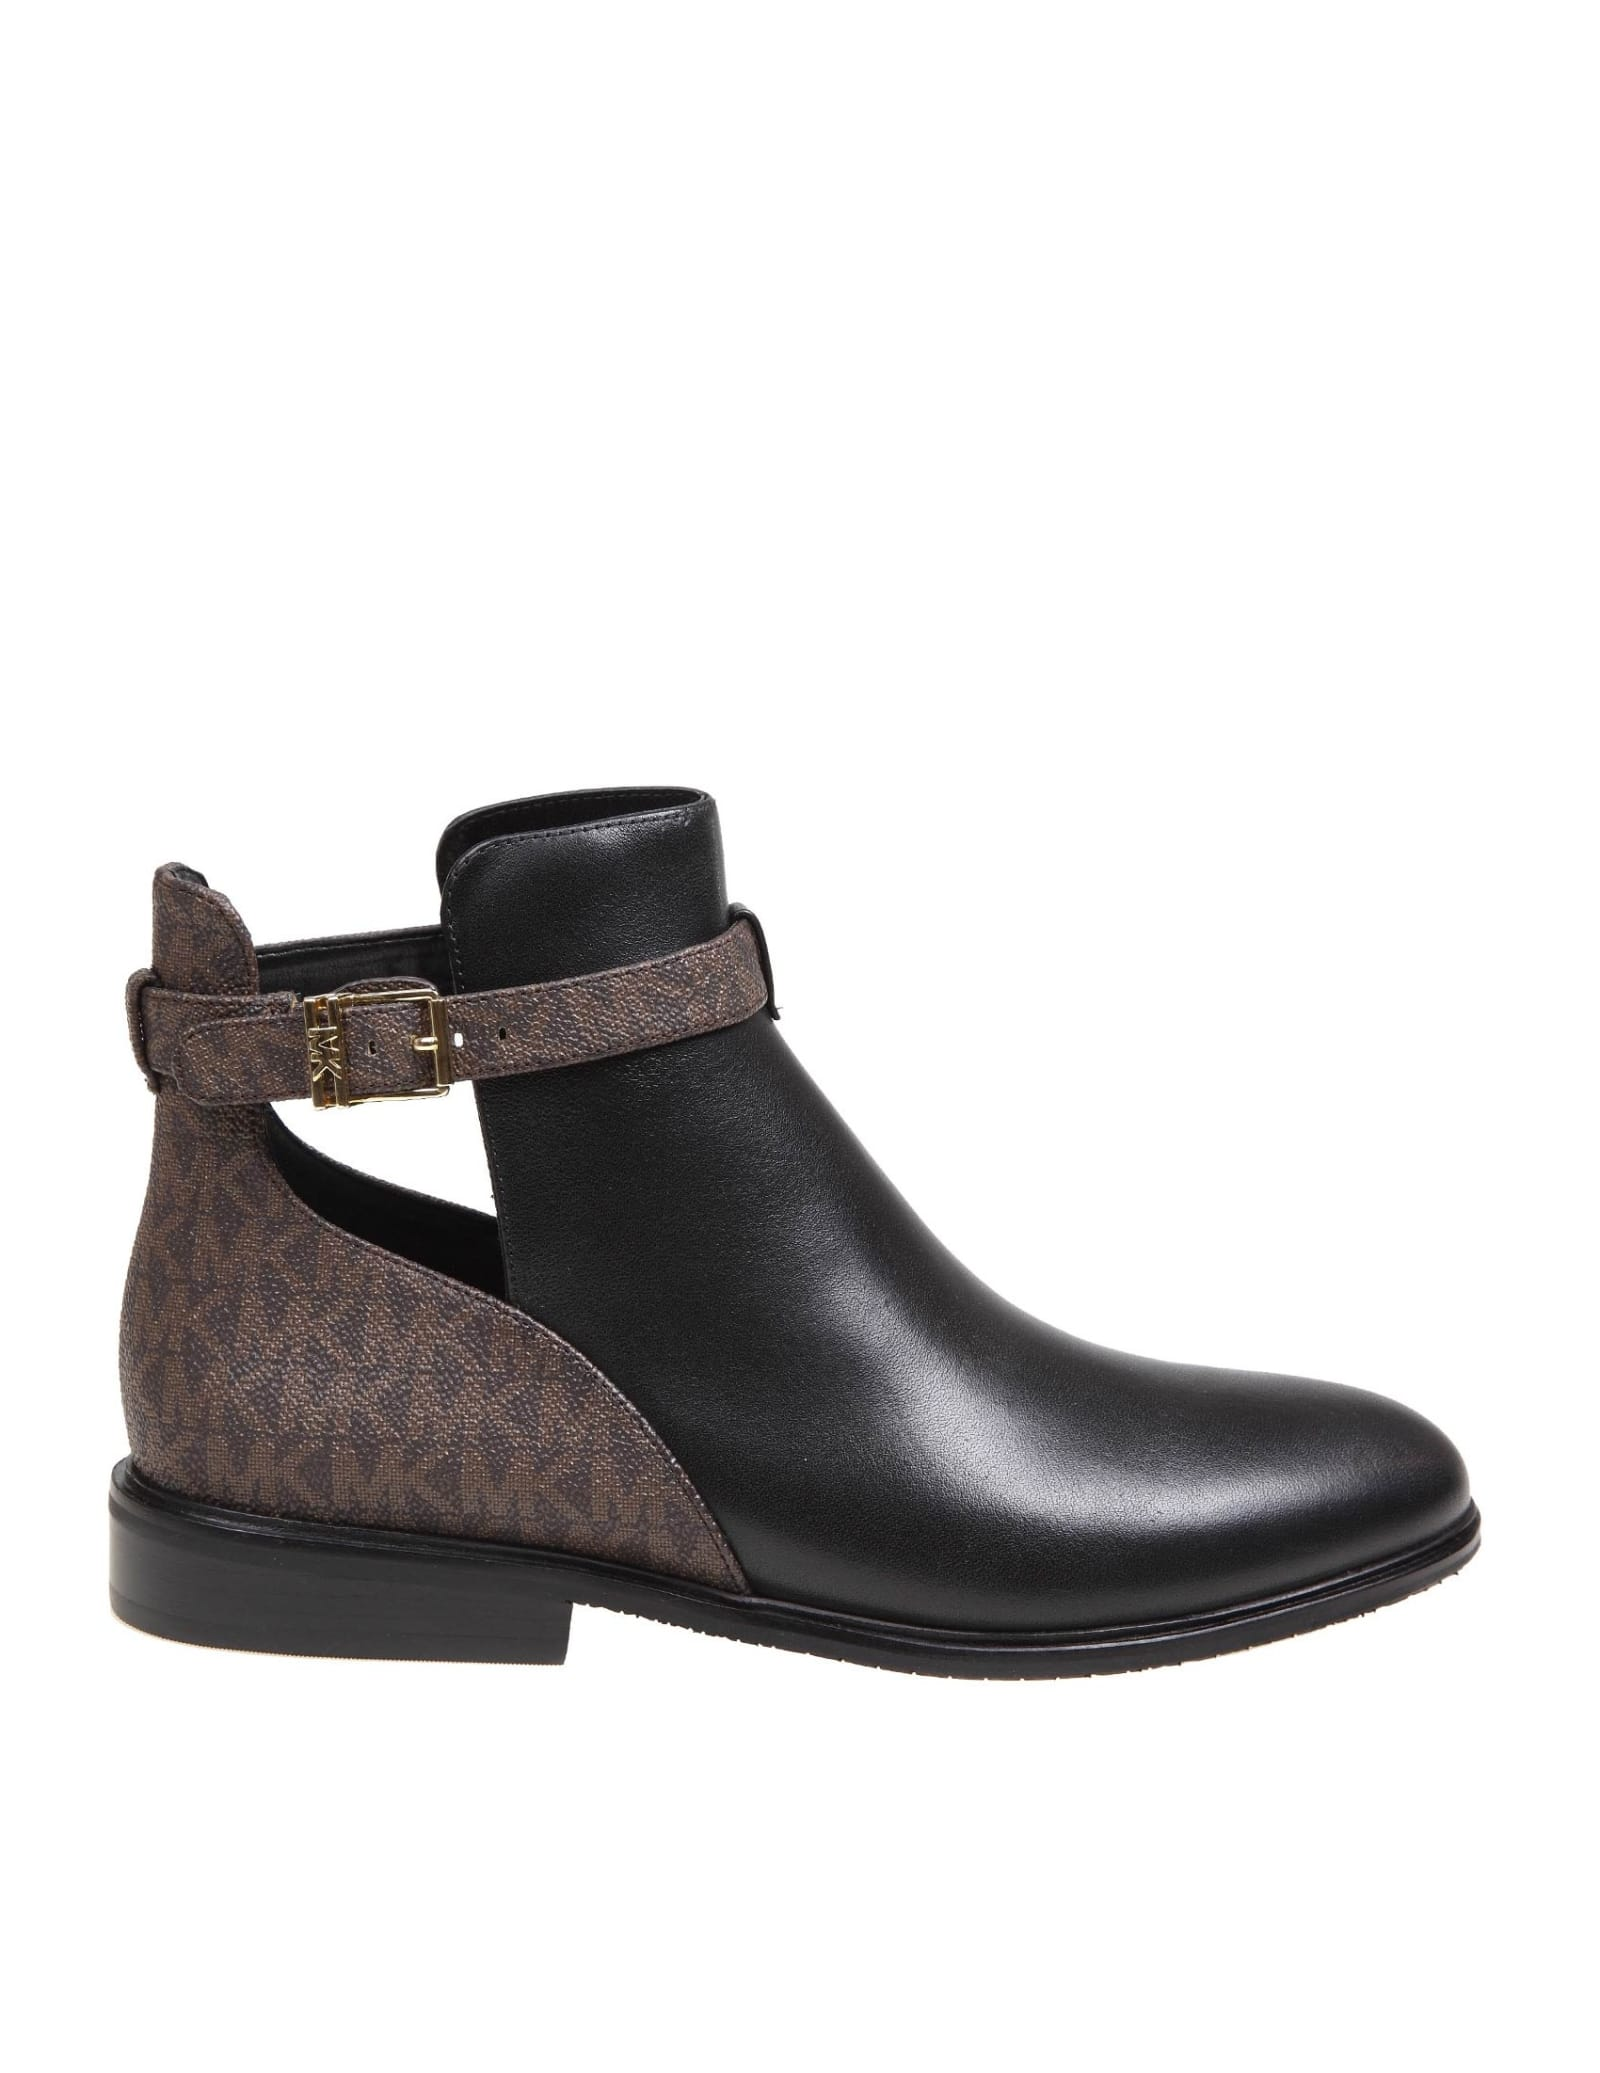 Michael Kors LAWSON LEATHER ANKLE BOOT